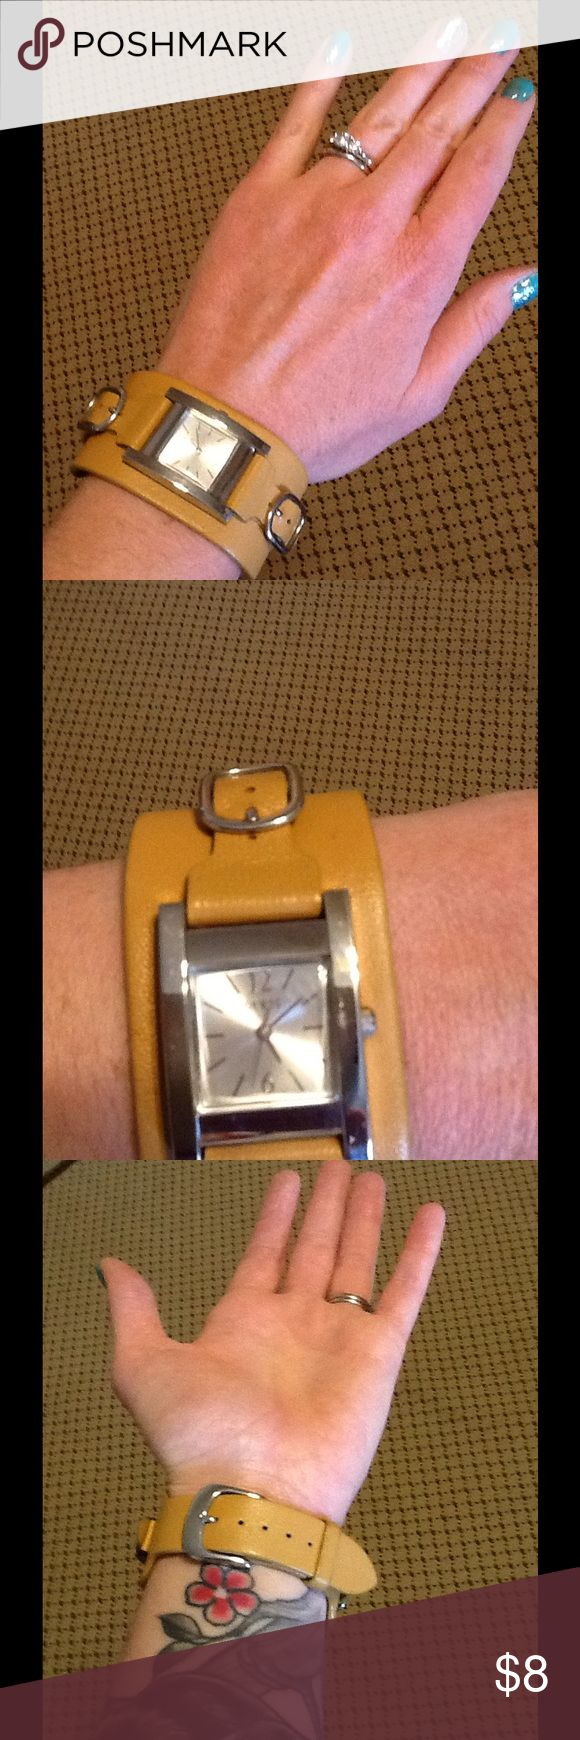 💰BOGO SALE💰Guess watch with Genuine Leather Band 💰BOGO SALE💰 Buy one get one free. This applies to all items marked with BOGO SALE. All items of equal or lesser value. Happy Poshing! ‼️‼️‼️‼️‼️‼️‼️‼️‼️Stylish Guess watch. Genuine Leather band in mustard color. Unfortunately, the battery is dead. Could easily be replaced at a jewelry store for a minimal cost. ⏱ Guess Accessories Watches